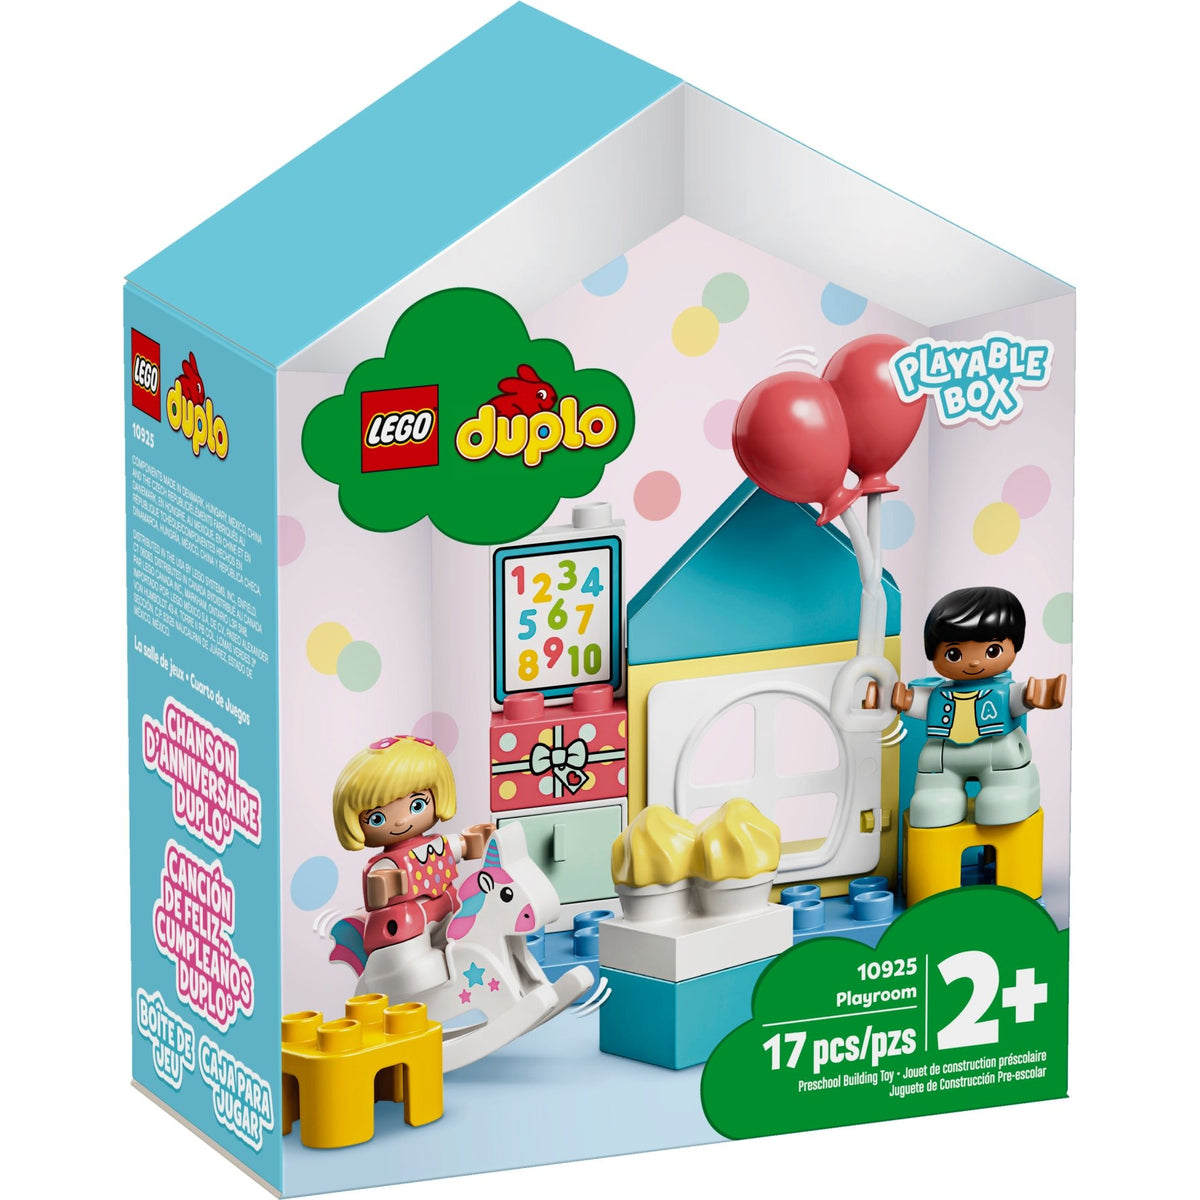 LEGO DUPLO Playroom canada ontario toddler infant play house 10925